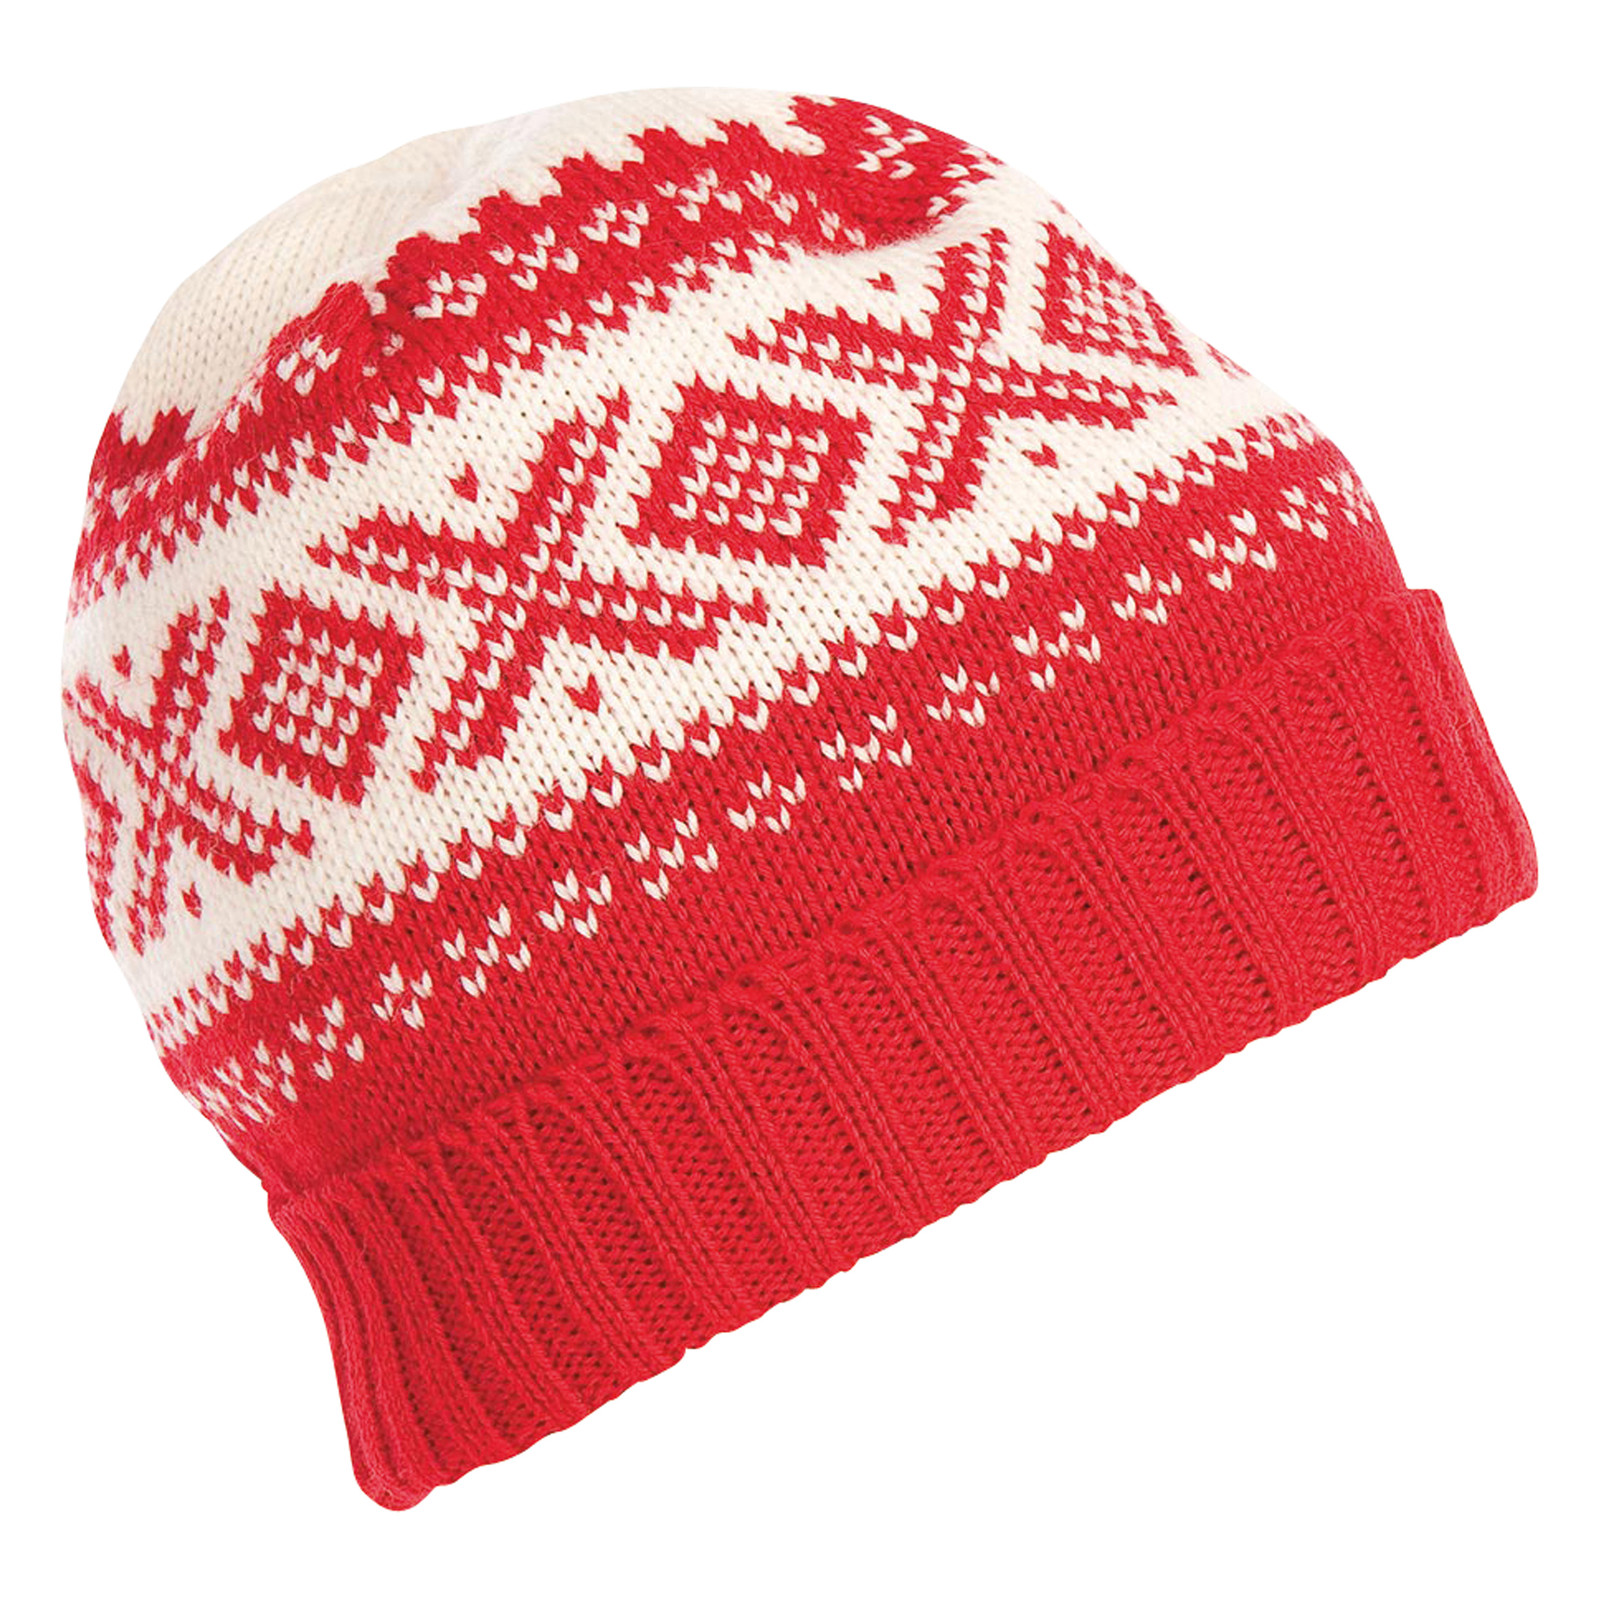 Dale of Norway Cortina 1956 Unisex Hat in Raspberry/Off White, 42261-B